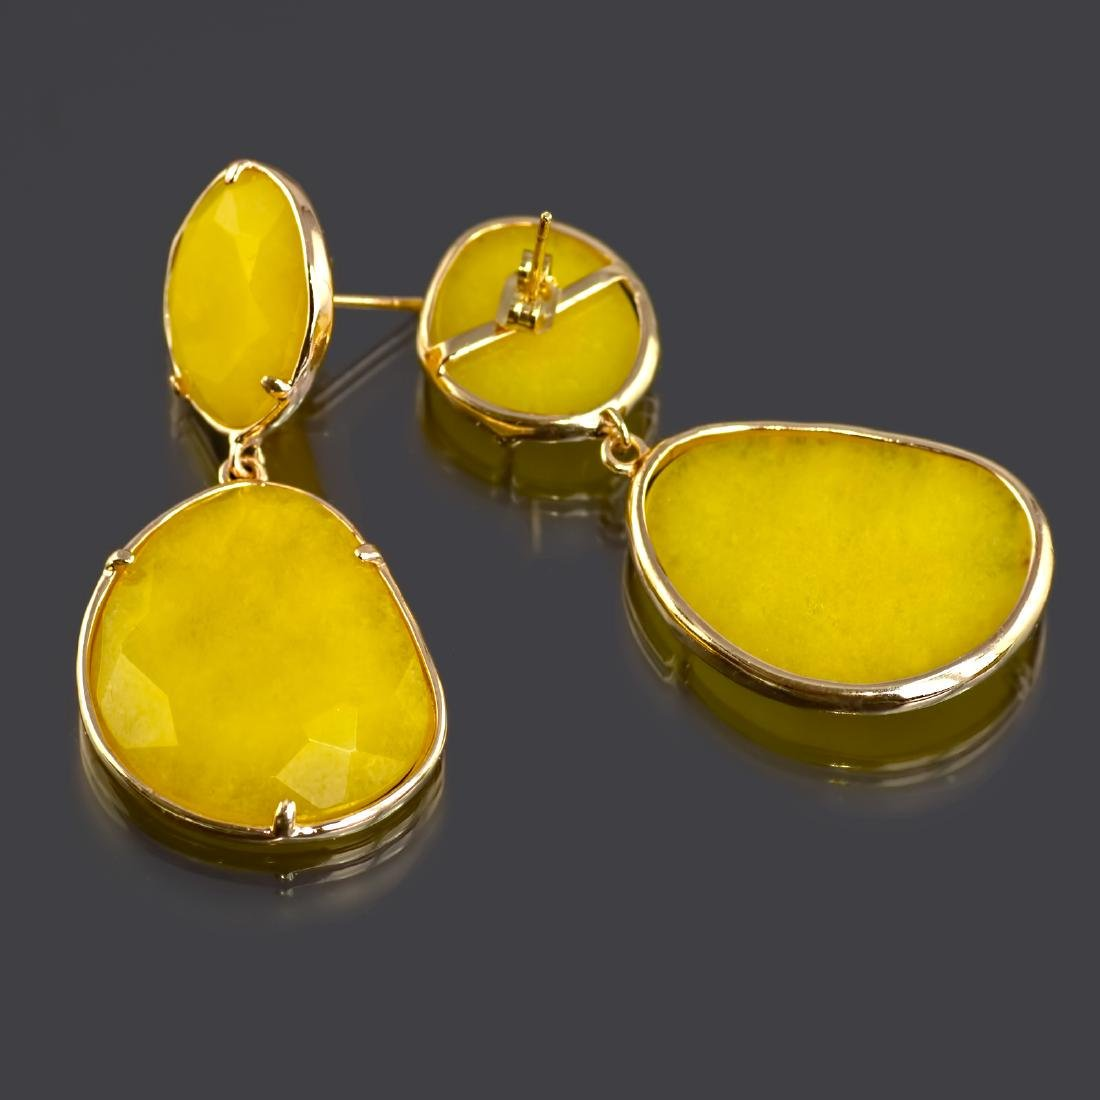 Yellow Jade Two Parts Earrings - 3